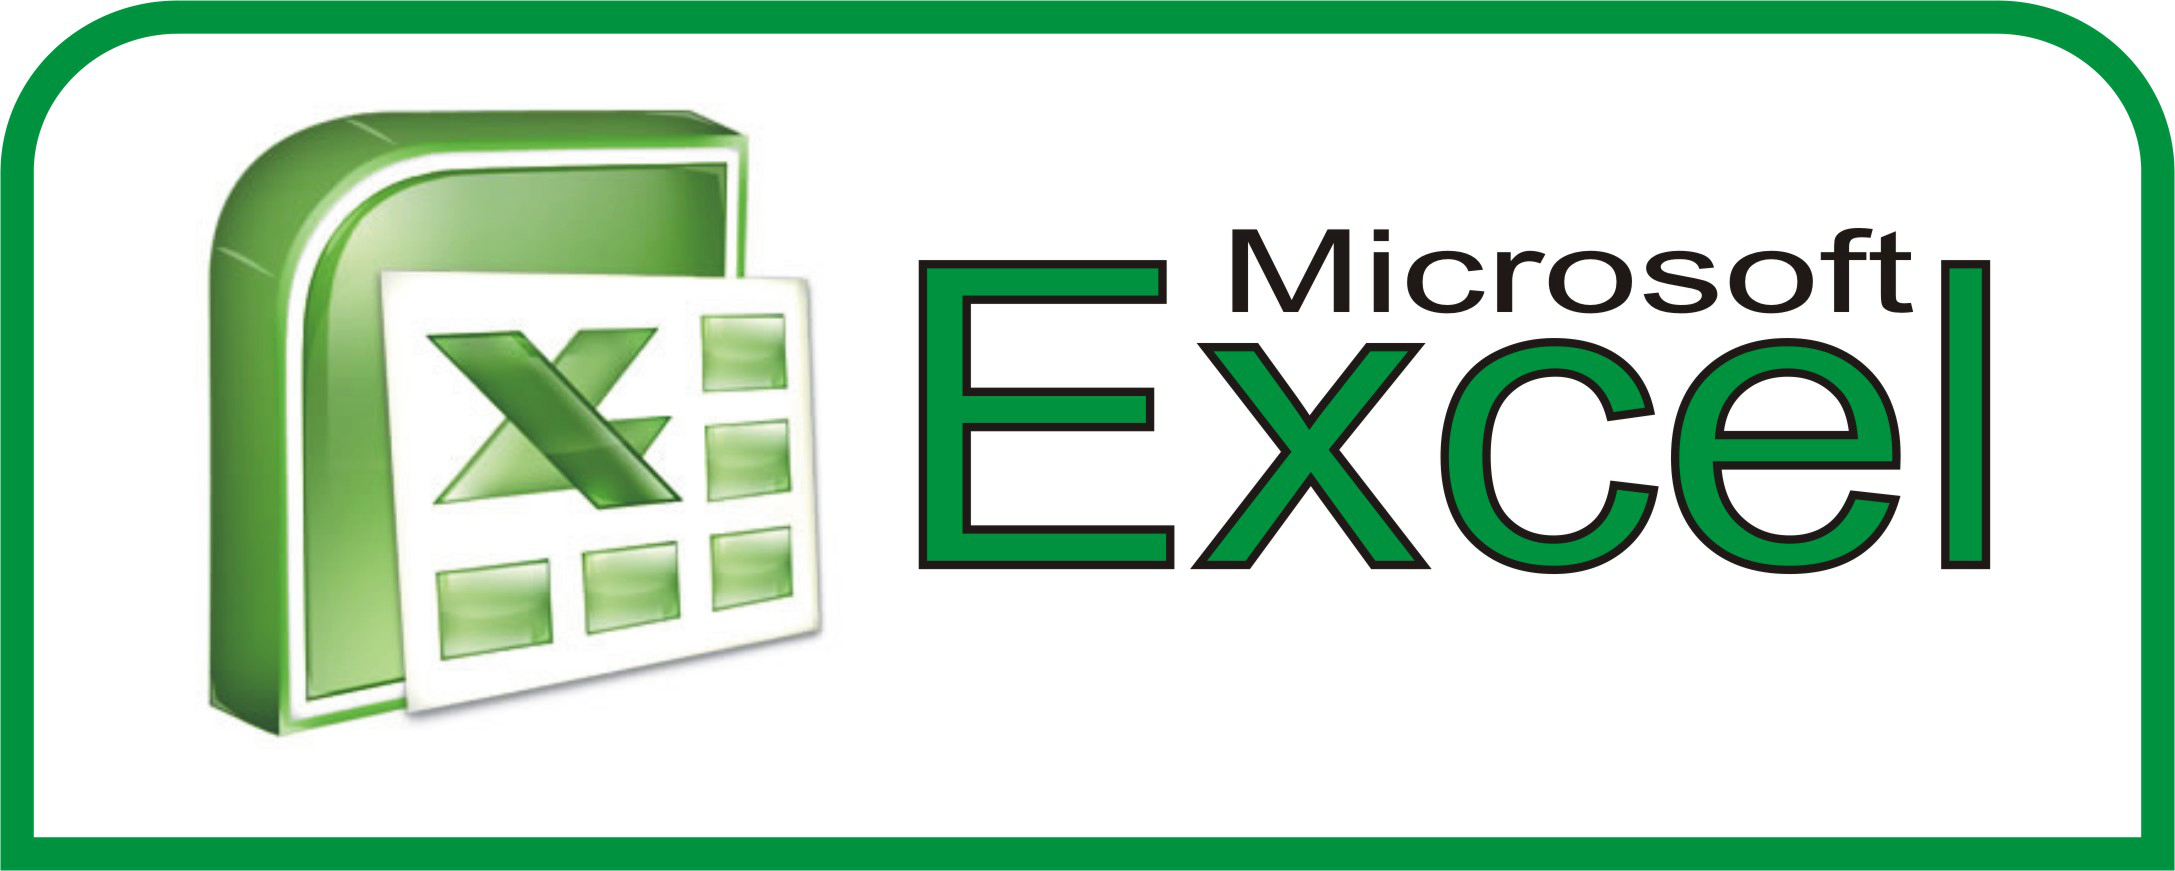 Ediblewildsus  Surprising  Excel Shortcuts You Probably Didnt Know About  Techdissected With Luxury Where Is Autofit In Excel  Besides How To Ungroup In Excel Furthermore What Is A Cell In Excel With Delectable Formula For Subtraction In Excel Also How To Insert An Excel Spreadsheet Into Word In Addition How To Put Numbers In Order In Excel And How To Multiply On Excel As Well As Freeze Excel Row Additionally How To Add A Space In Excel From Techdissectedcom With Ediblewildsus  Luxury  Excel Shortcuts You Probably Didnt Know About  Techdissected With Delectable Where Is Autofit In Excel  Besides How To Ungroup In Excel Furthermore What Is A Cell In Excel And Surprising Formula For Subtraction In Excel Also How To Insert An Excel Spreadsheet Into Word In Addition How To Put Numbers In Order In Excel From Techdissectedcom